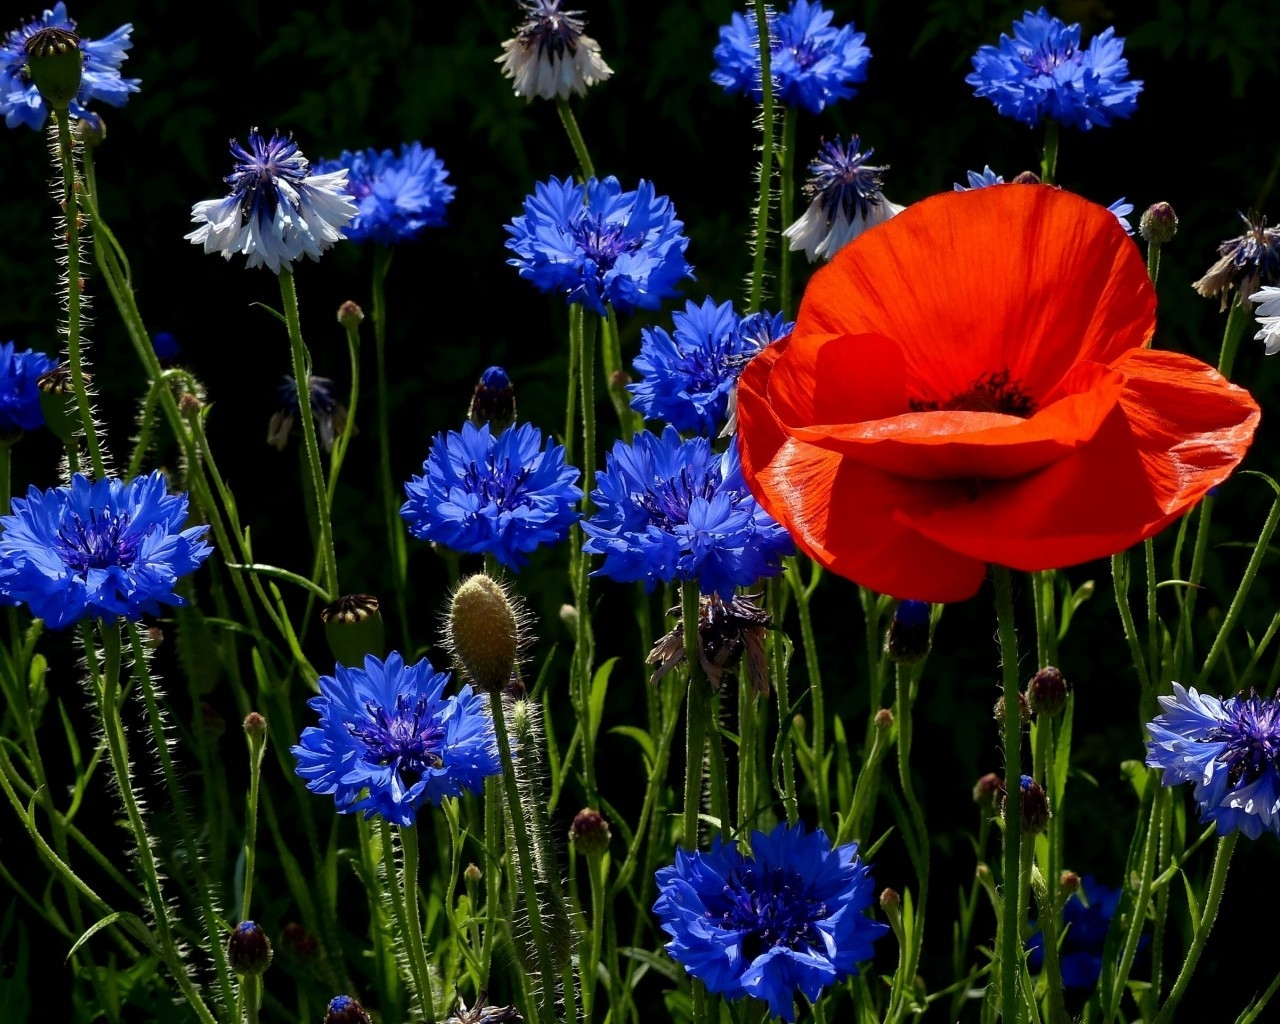 Poppies and Cornflowers for 1280 x 1024 resolution